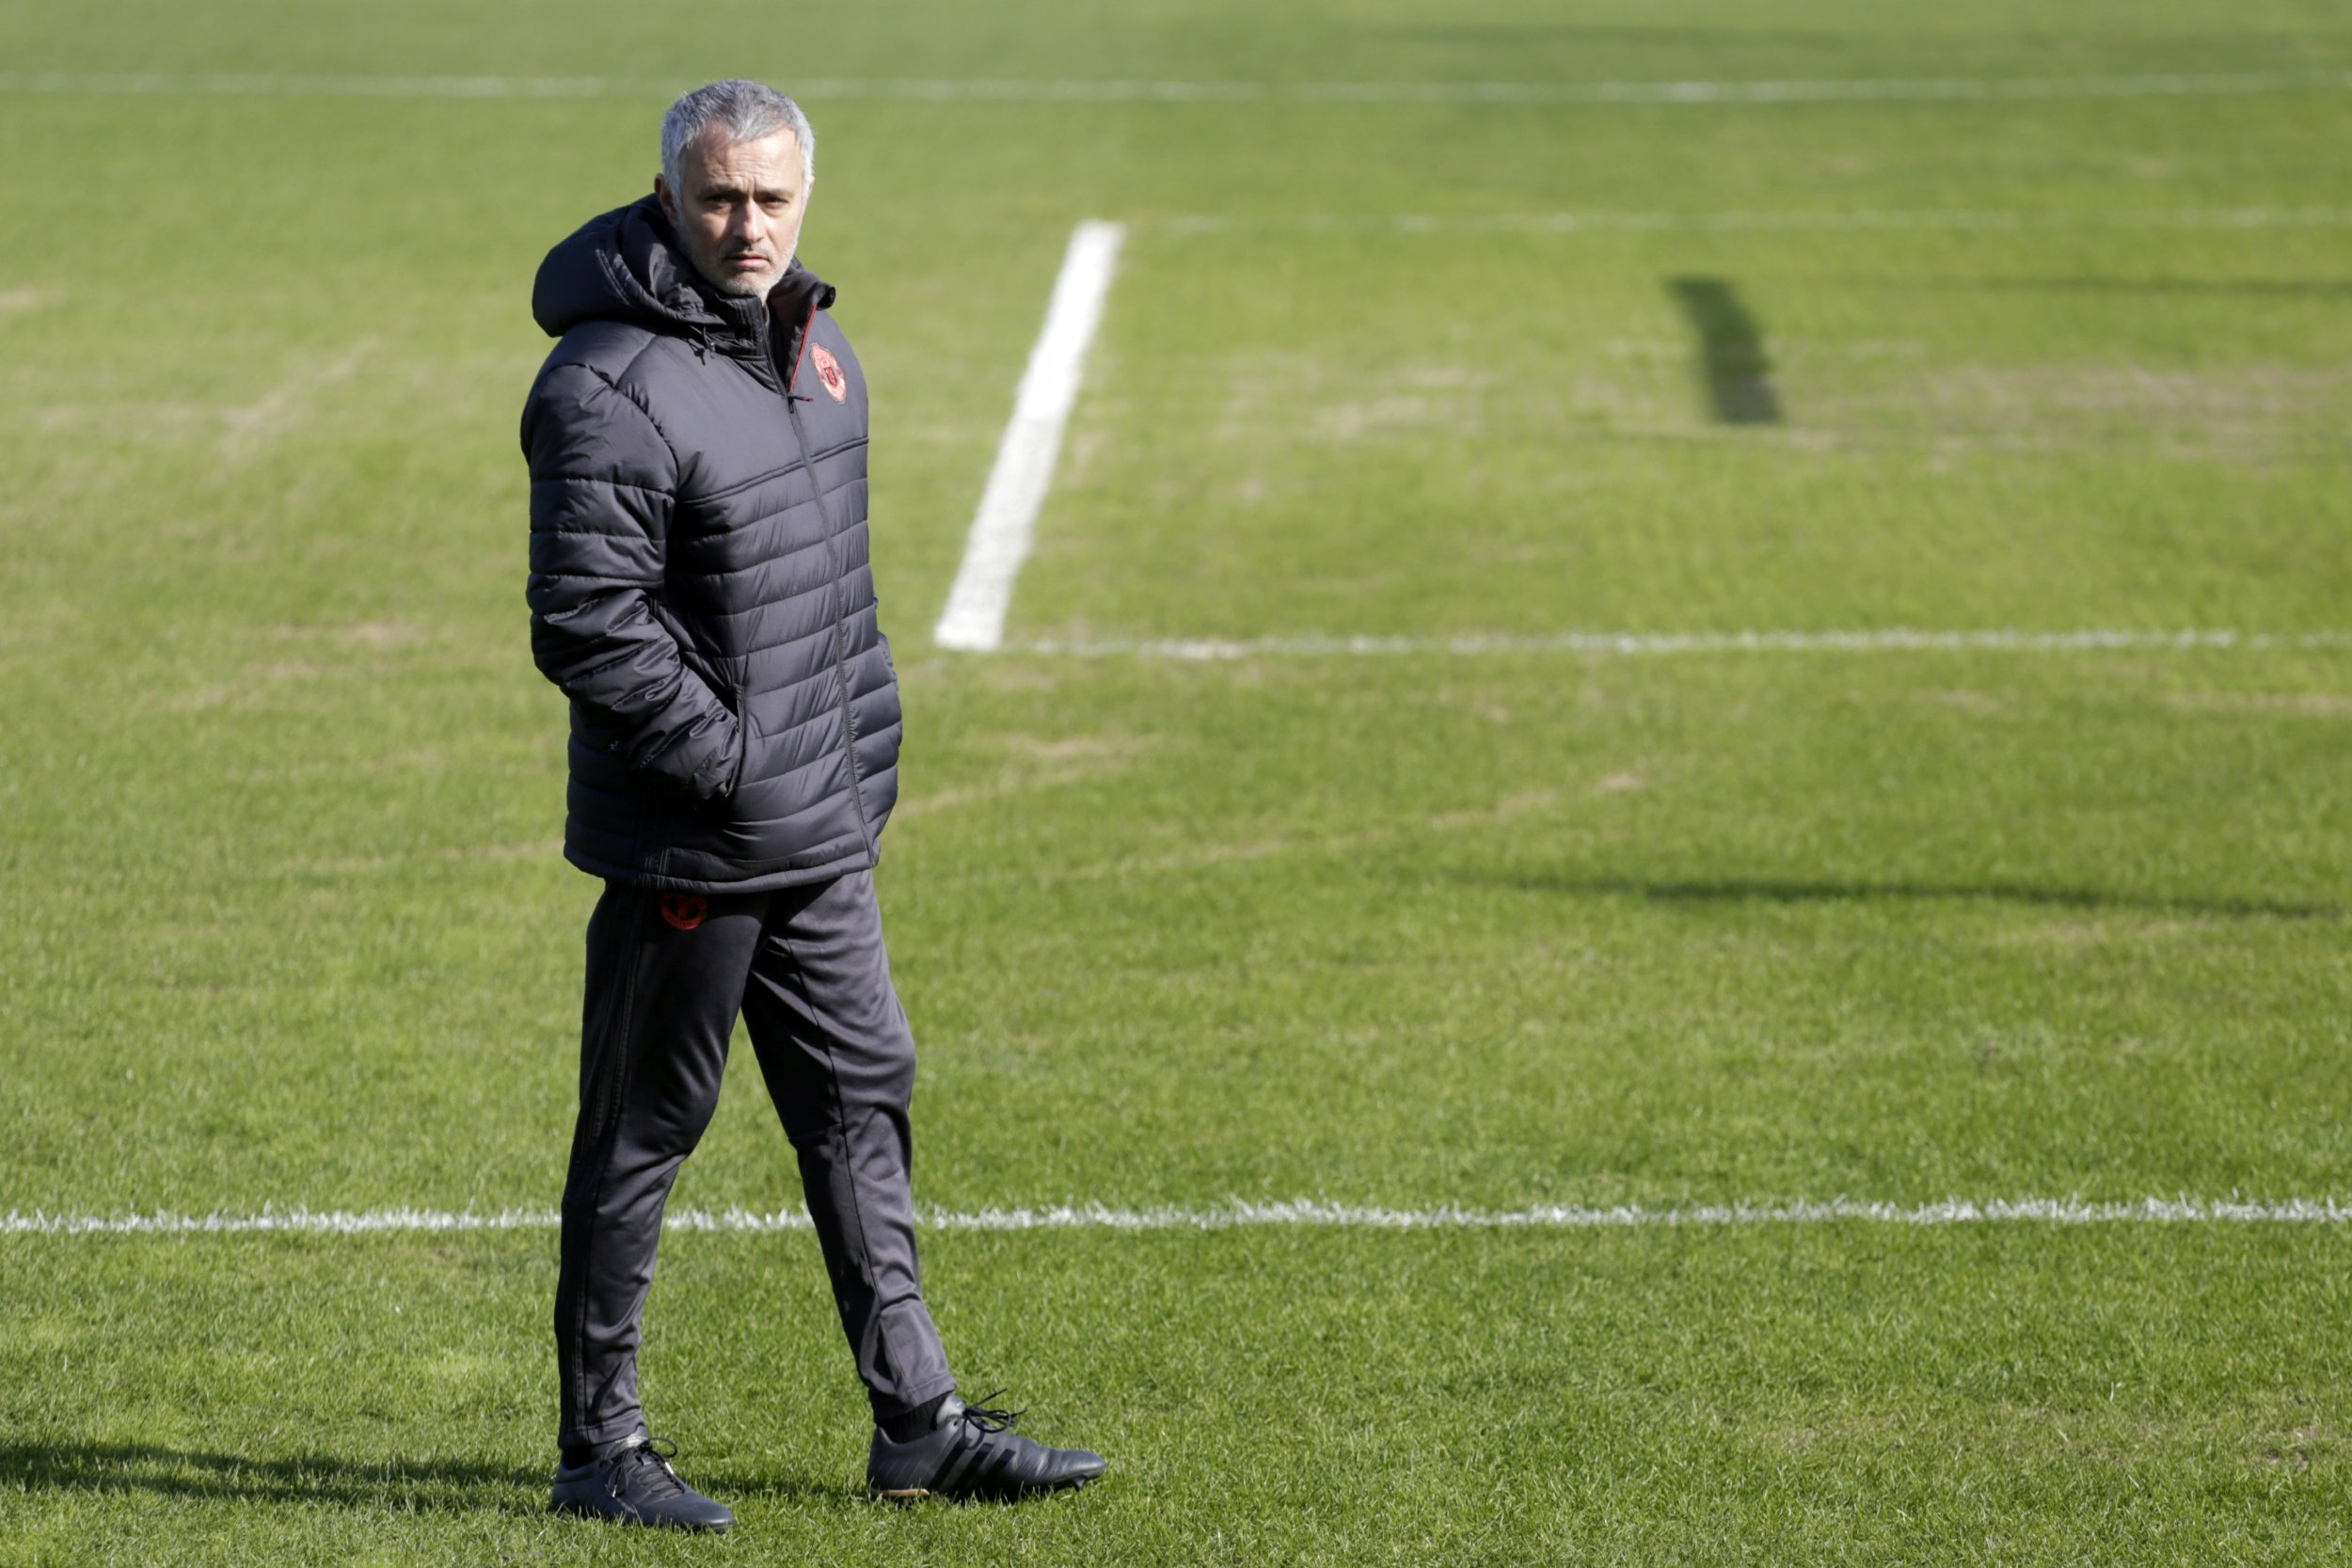 Manchester United manager Jose Mourinho in Rostov-on-Don, Russia